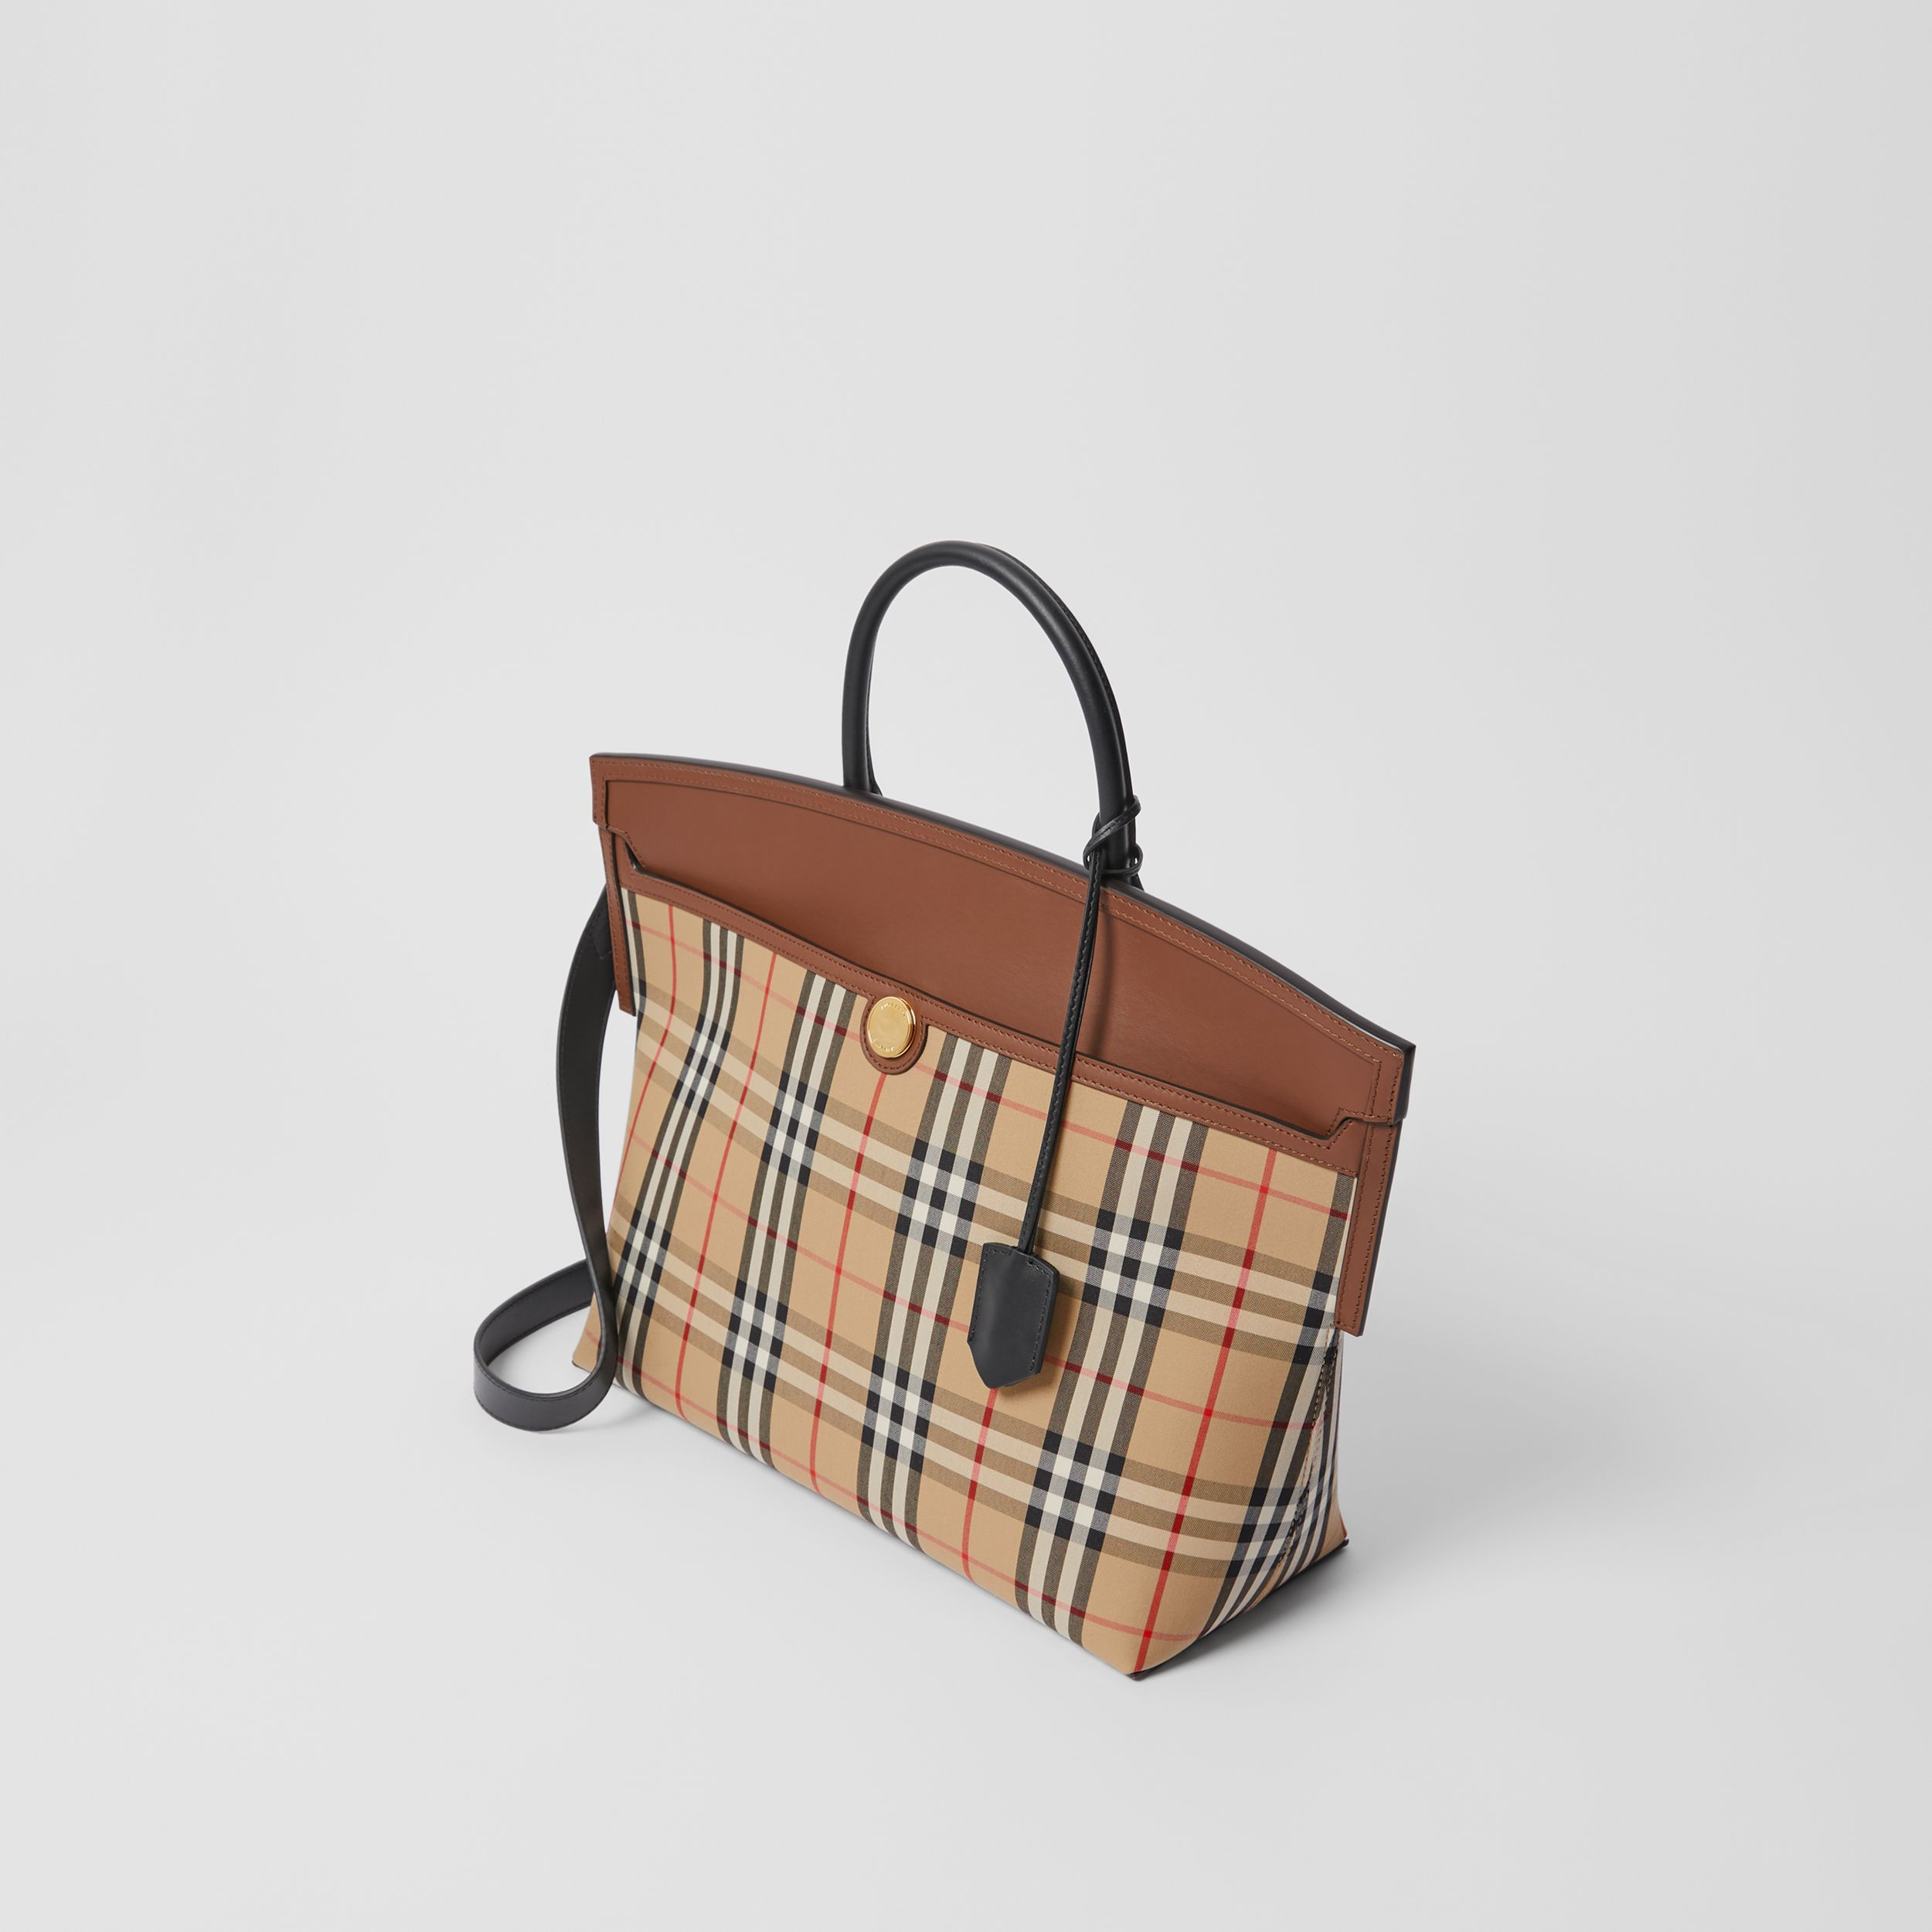 Vintage Check and Leather Society Top Handle Bag in Archive Beige/tan - Women | Burberry - 4